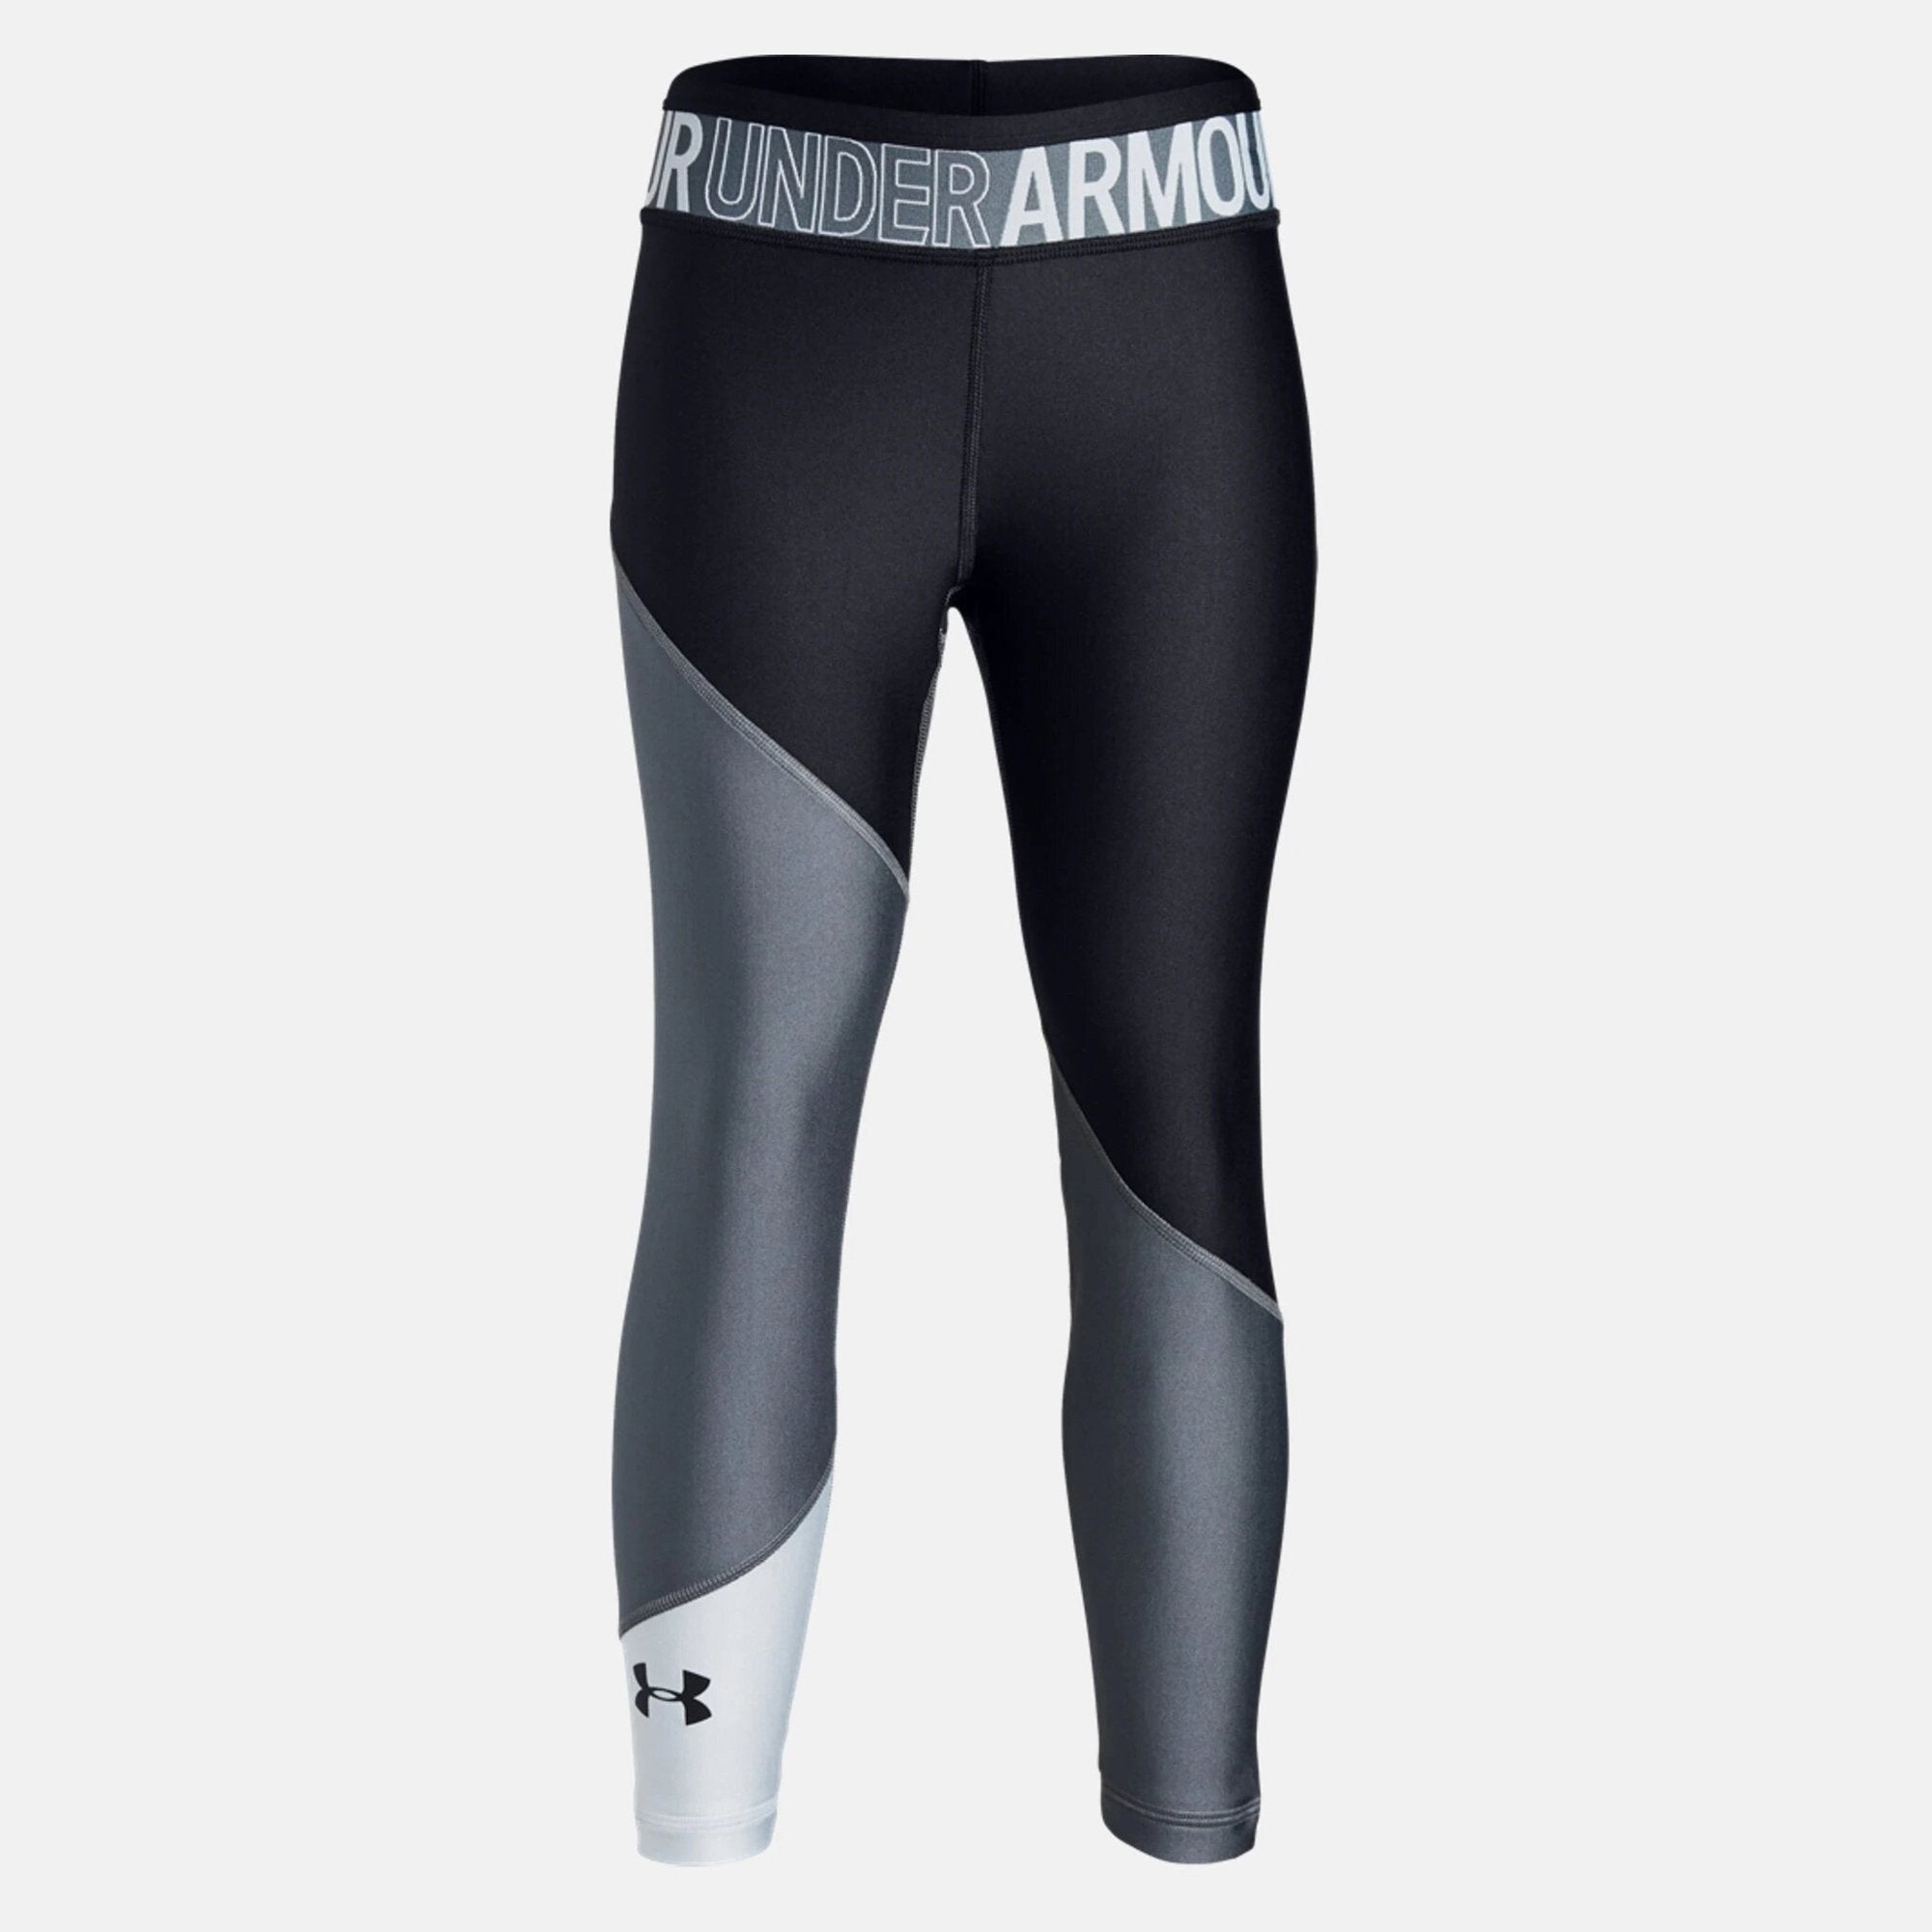 768aa4781178f Buy Under Armour Girls Heatgear Armour Colour Block Ankle Crops Leggings  Online in Singapore | Royal Sporting House